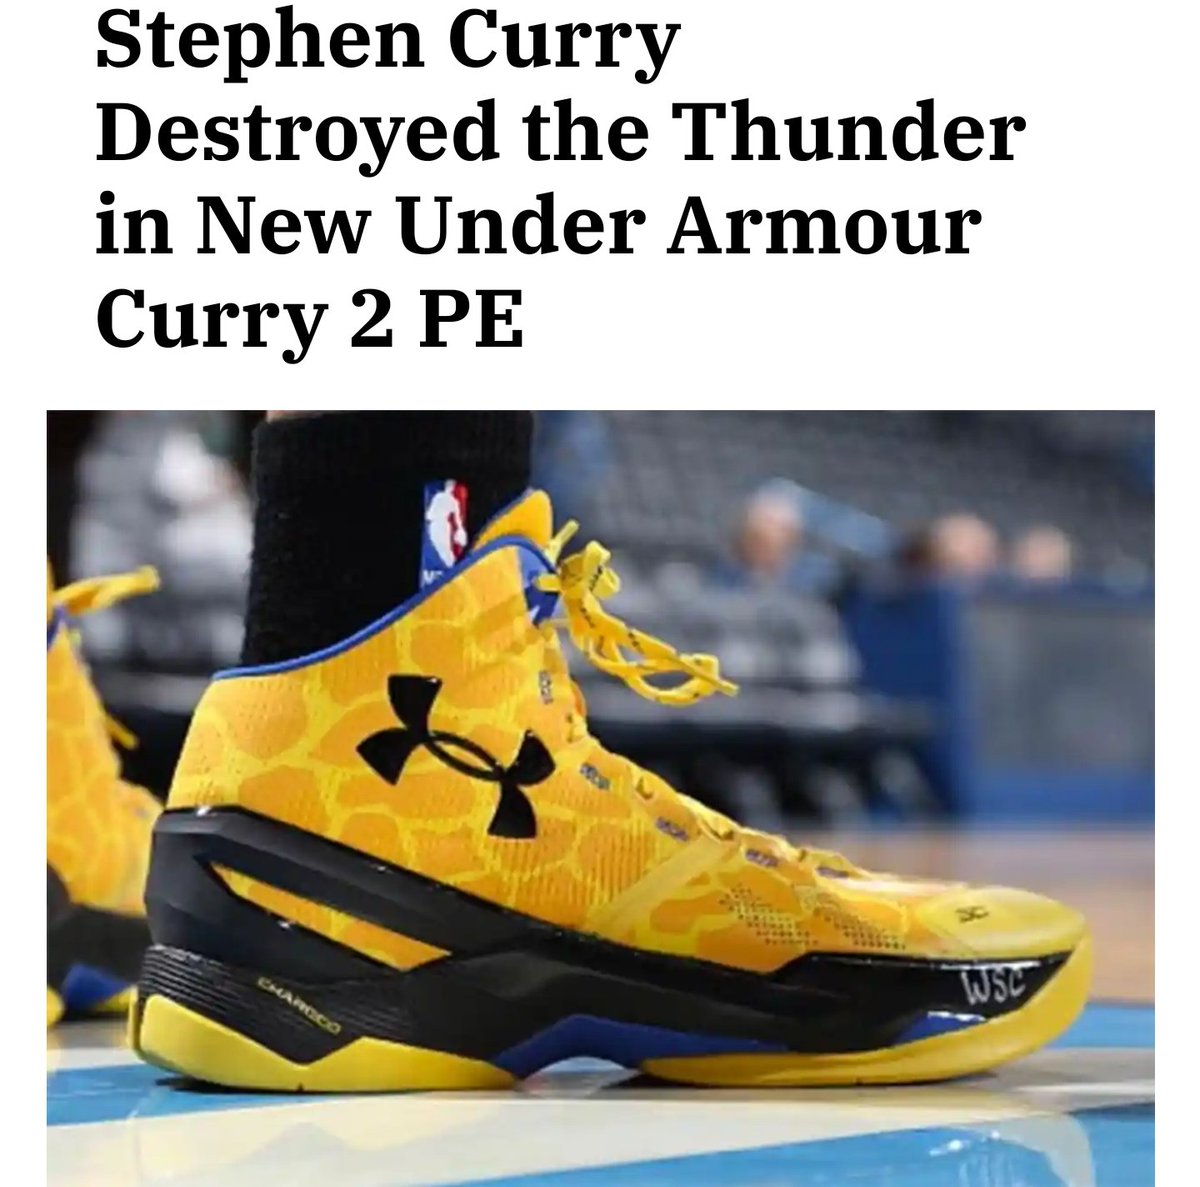 @zDGHOOPS @PublicServant87 @StephenCurry30 @warriorsworld @TheWarriorsTalk @FlashSole #CurryBrand need to release these. Iconic shoe from that iconic game.